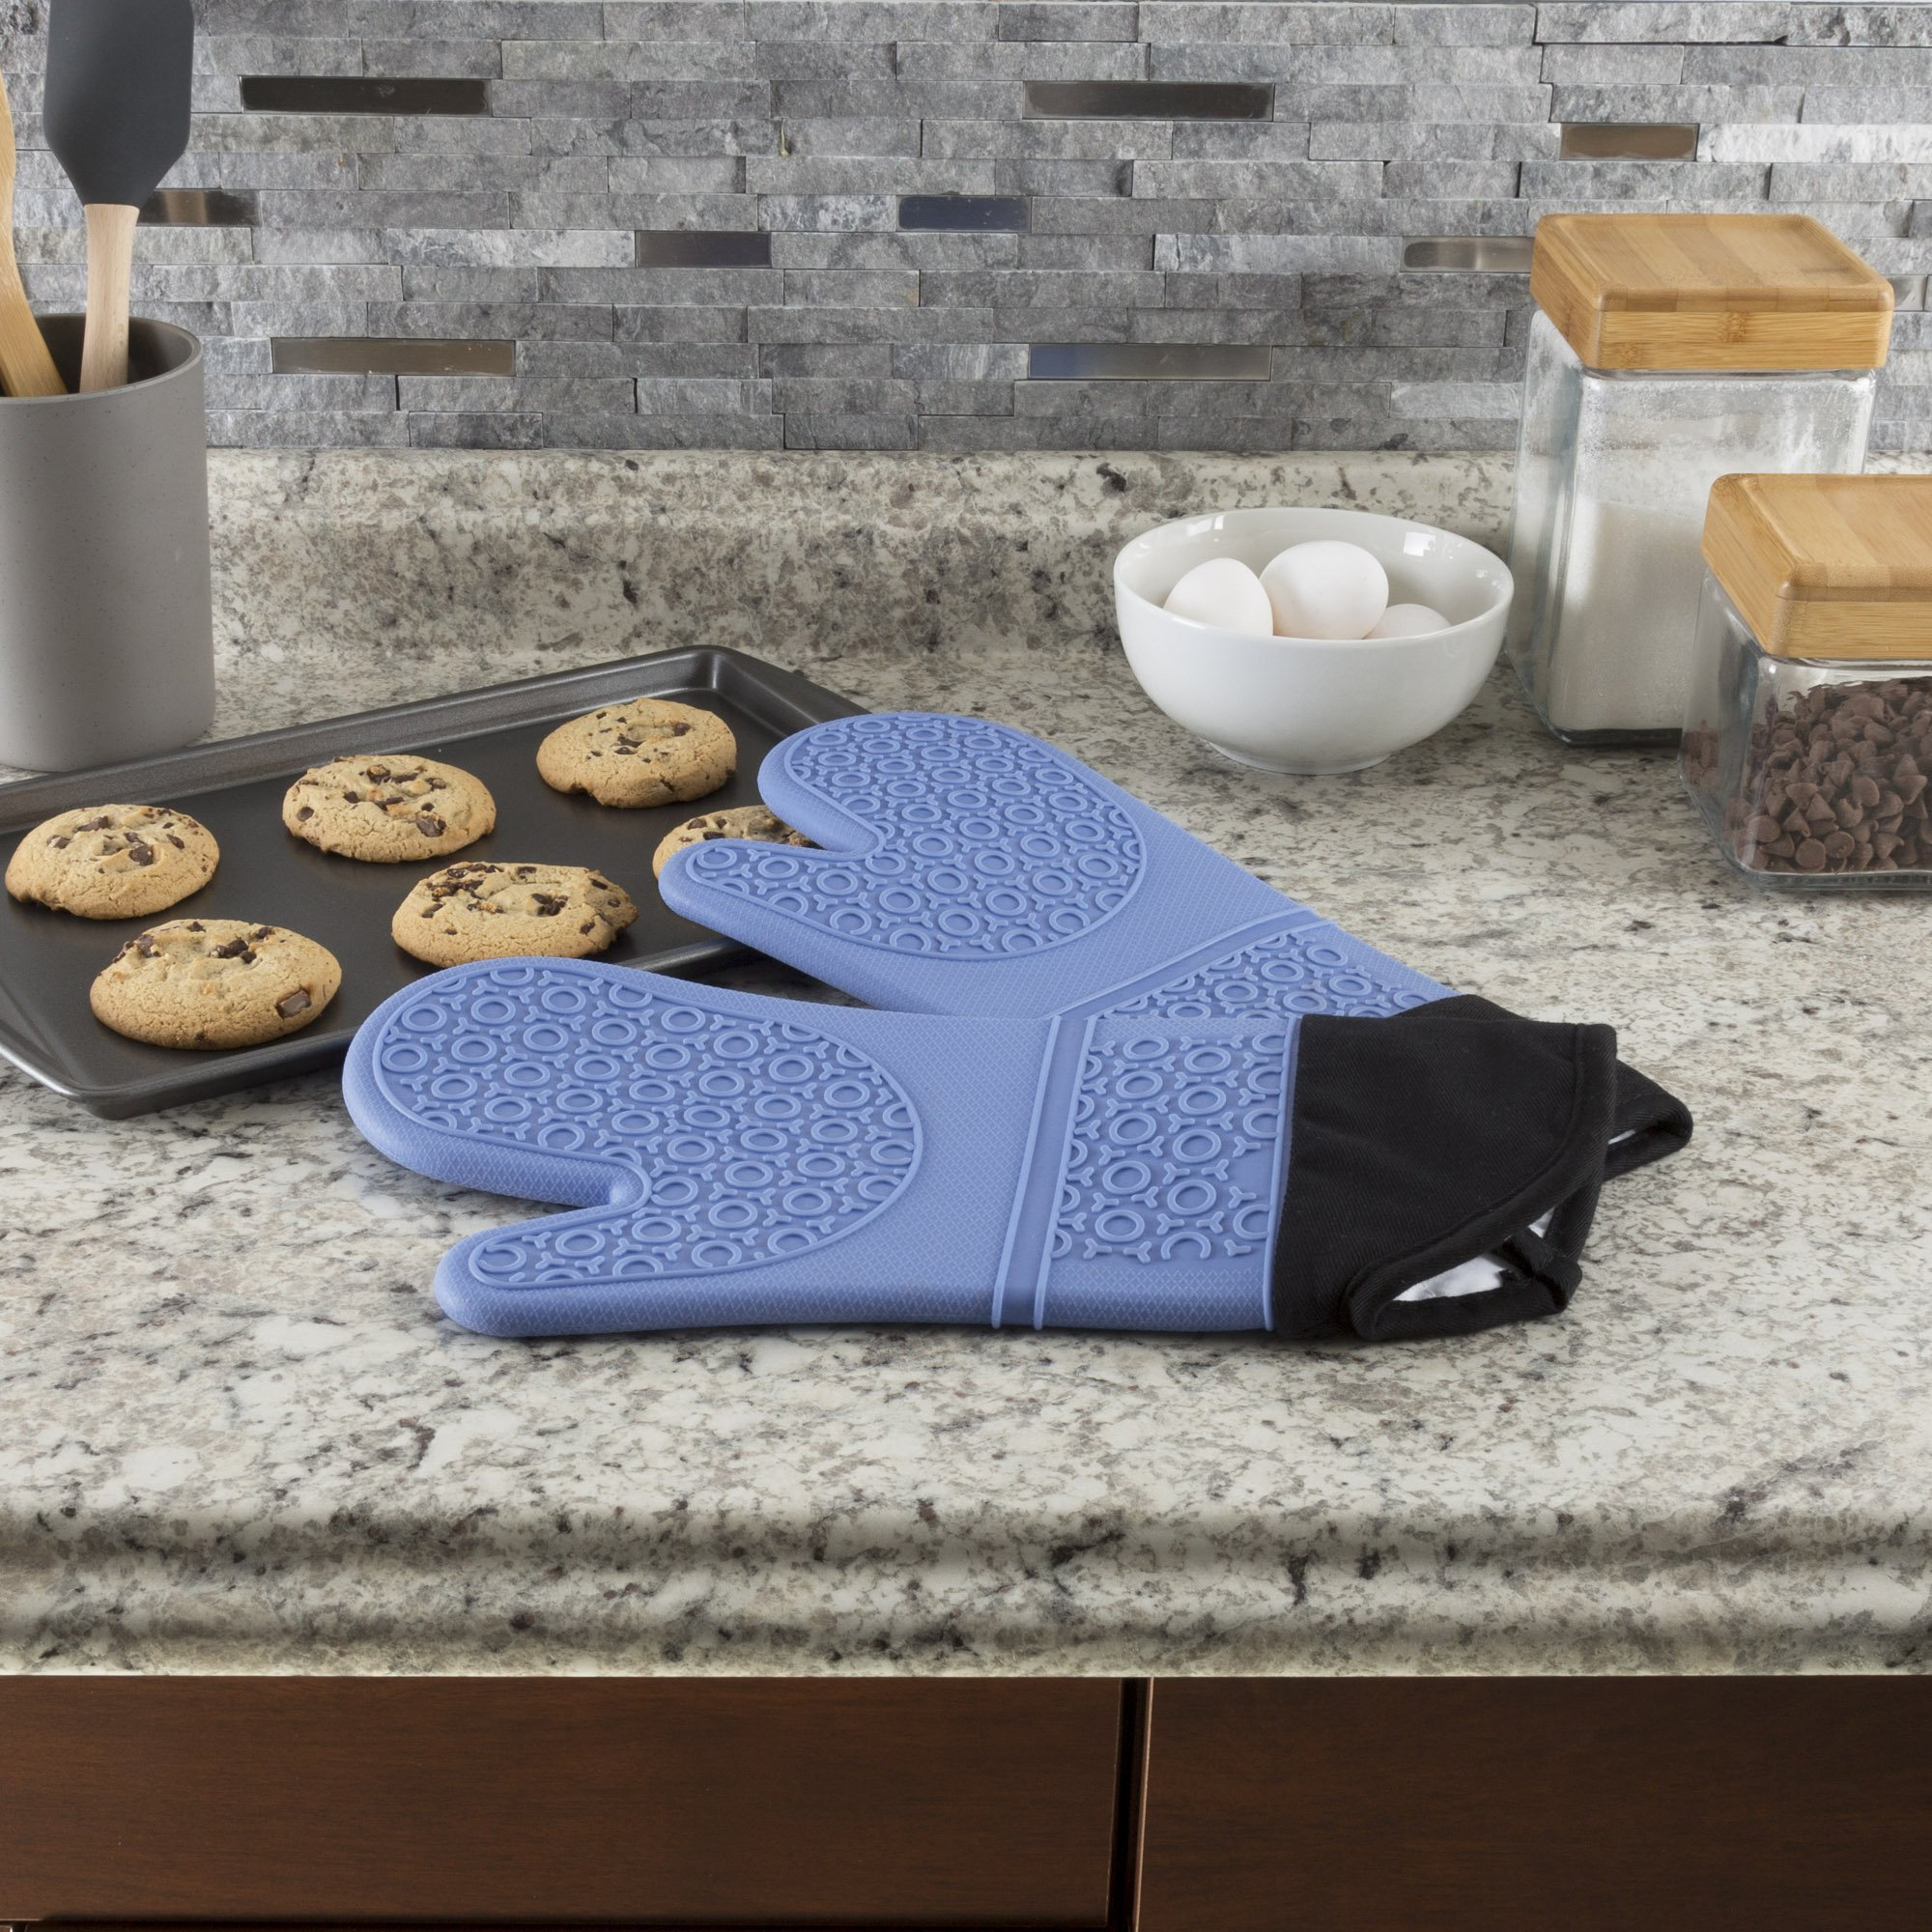 Silicone Oven Mitts – Extra Long Professional Quality Heat Resistant with Quilted Lining and 2-sided Textured Grip – 1 pair Blue by Lavish Home by Lavish Home (Image #2)